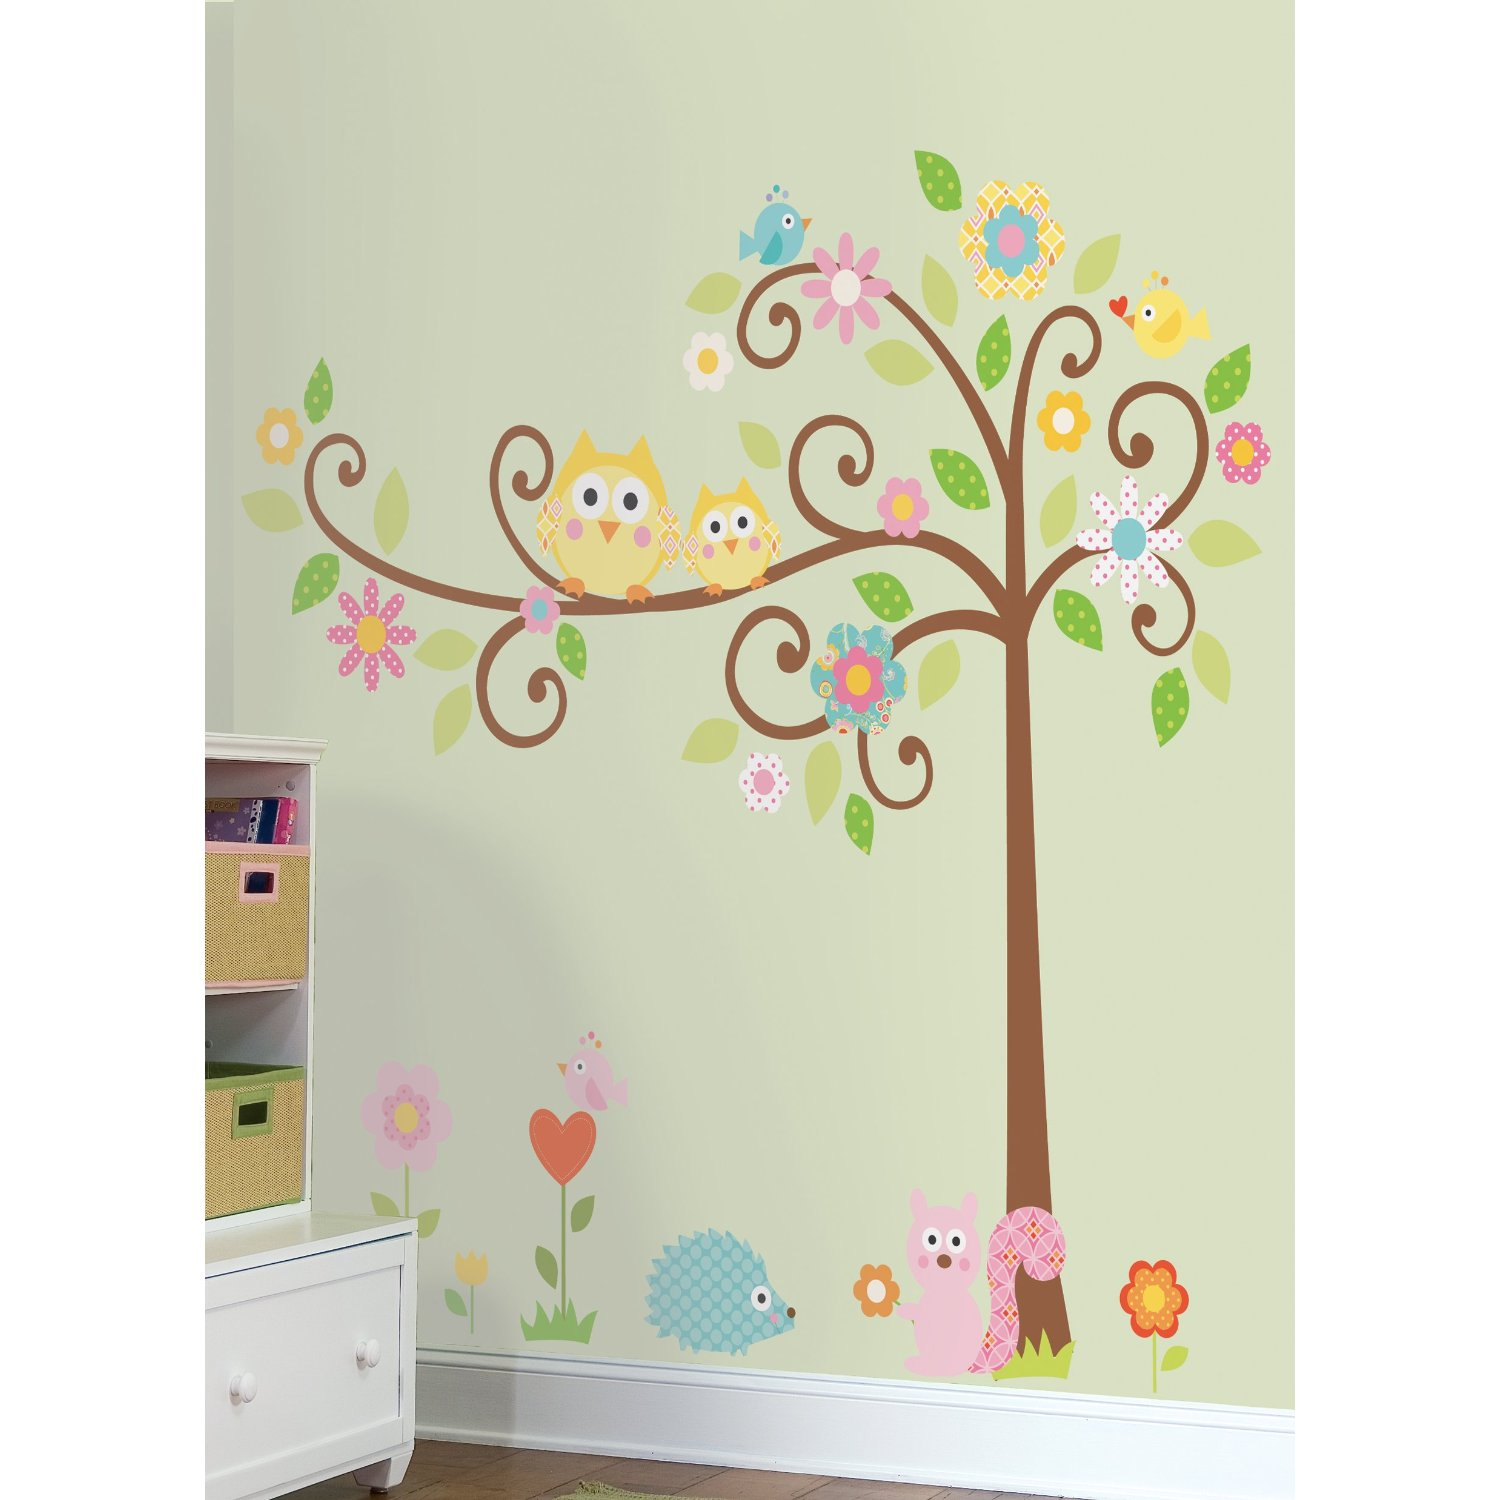 Nursery room ideas nursery wall decals for Nursery wall art